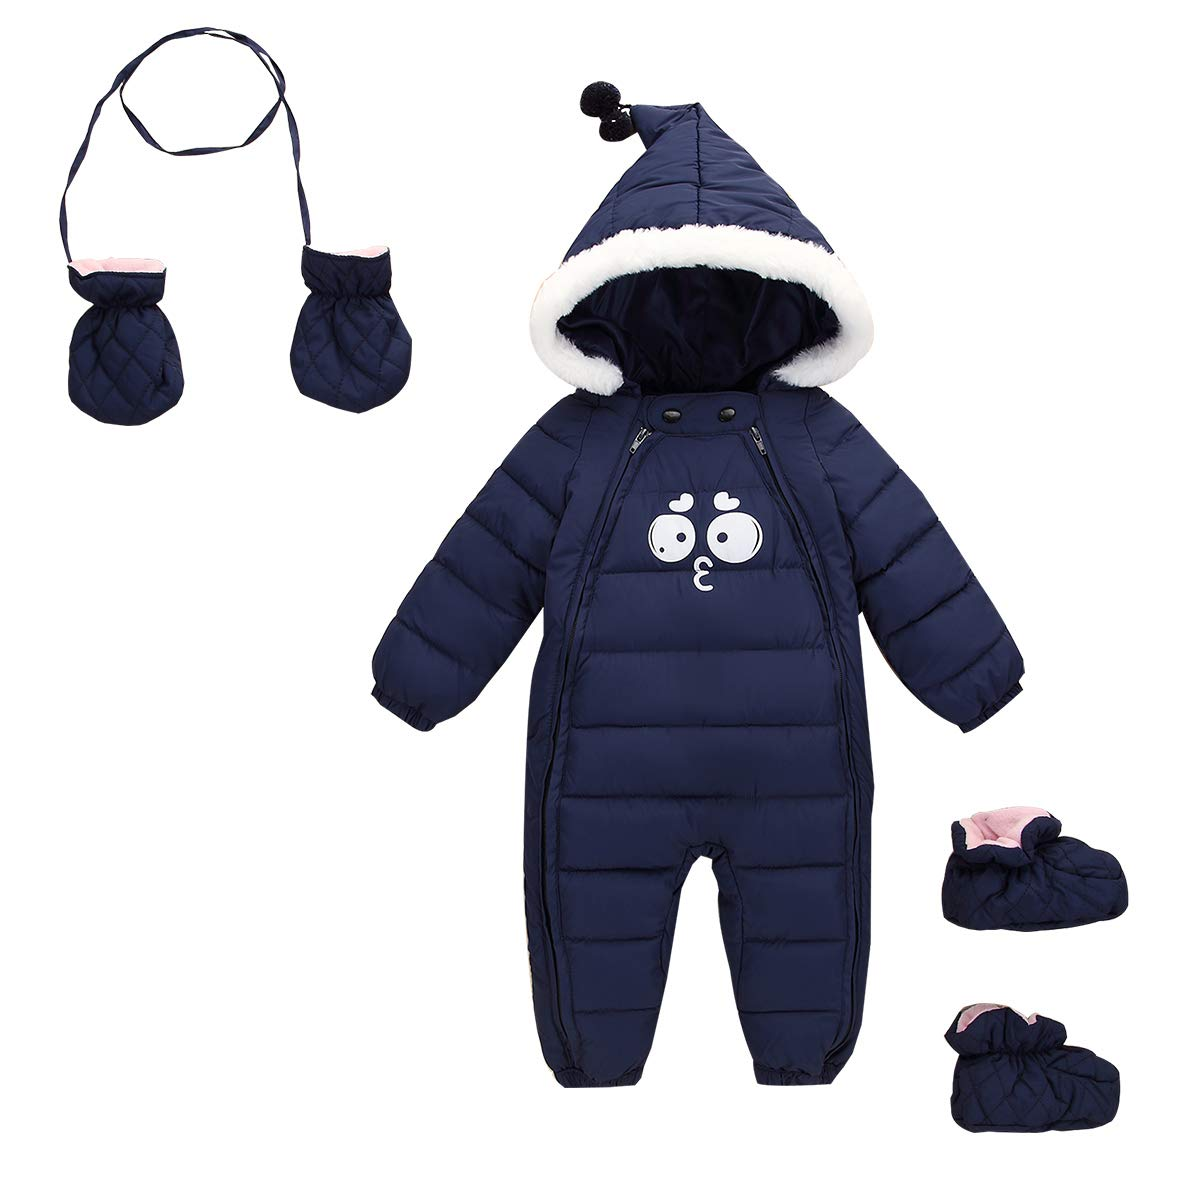 Happy Cherry Newborn Toddler Baby Clothes Girls Boys Romper Winter Jumpsuit Thicken Cotton Snowsuit 3 Pieces 6-12 Months Dark Blue by Happy Cherry